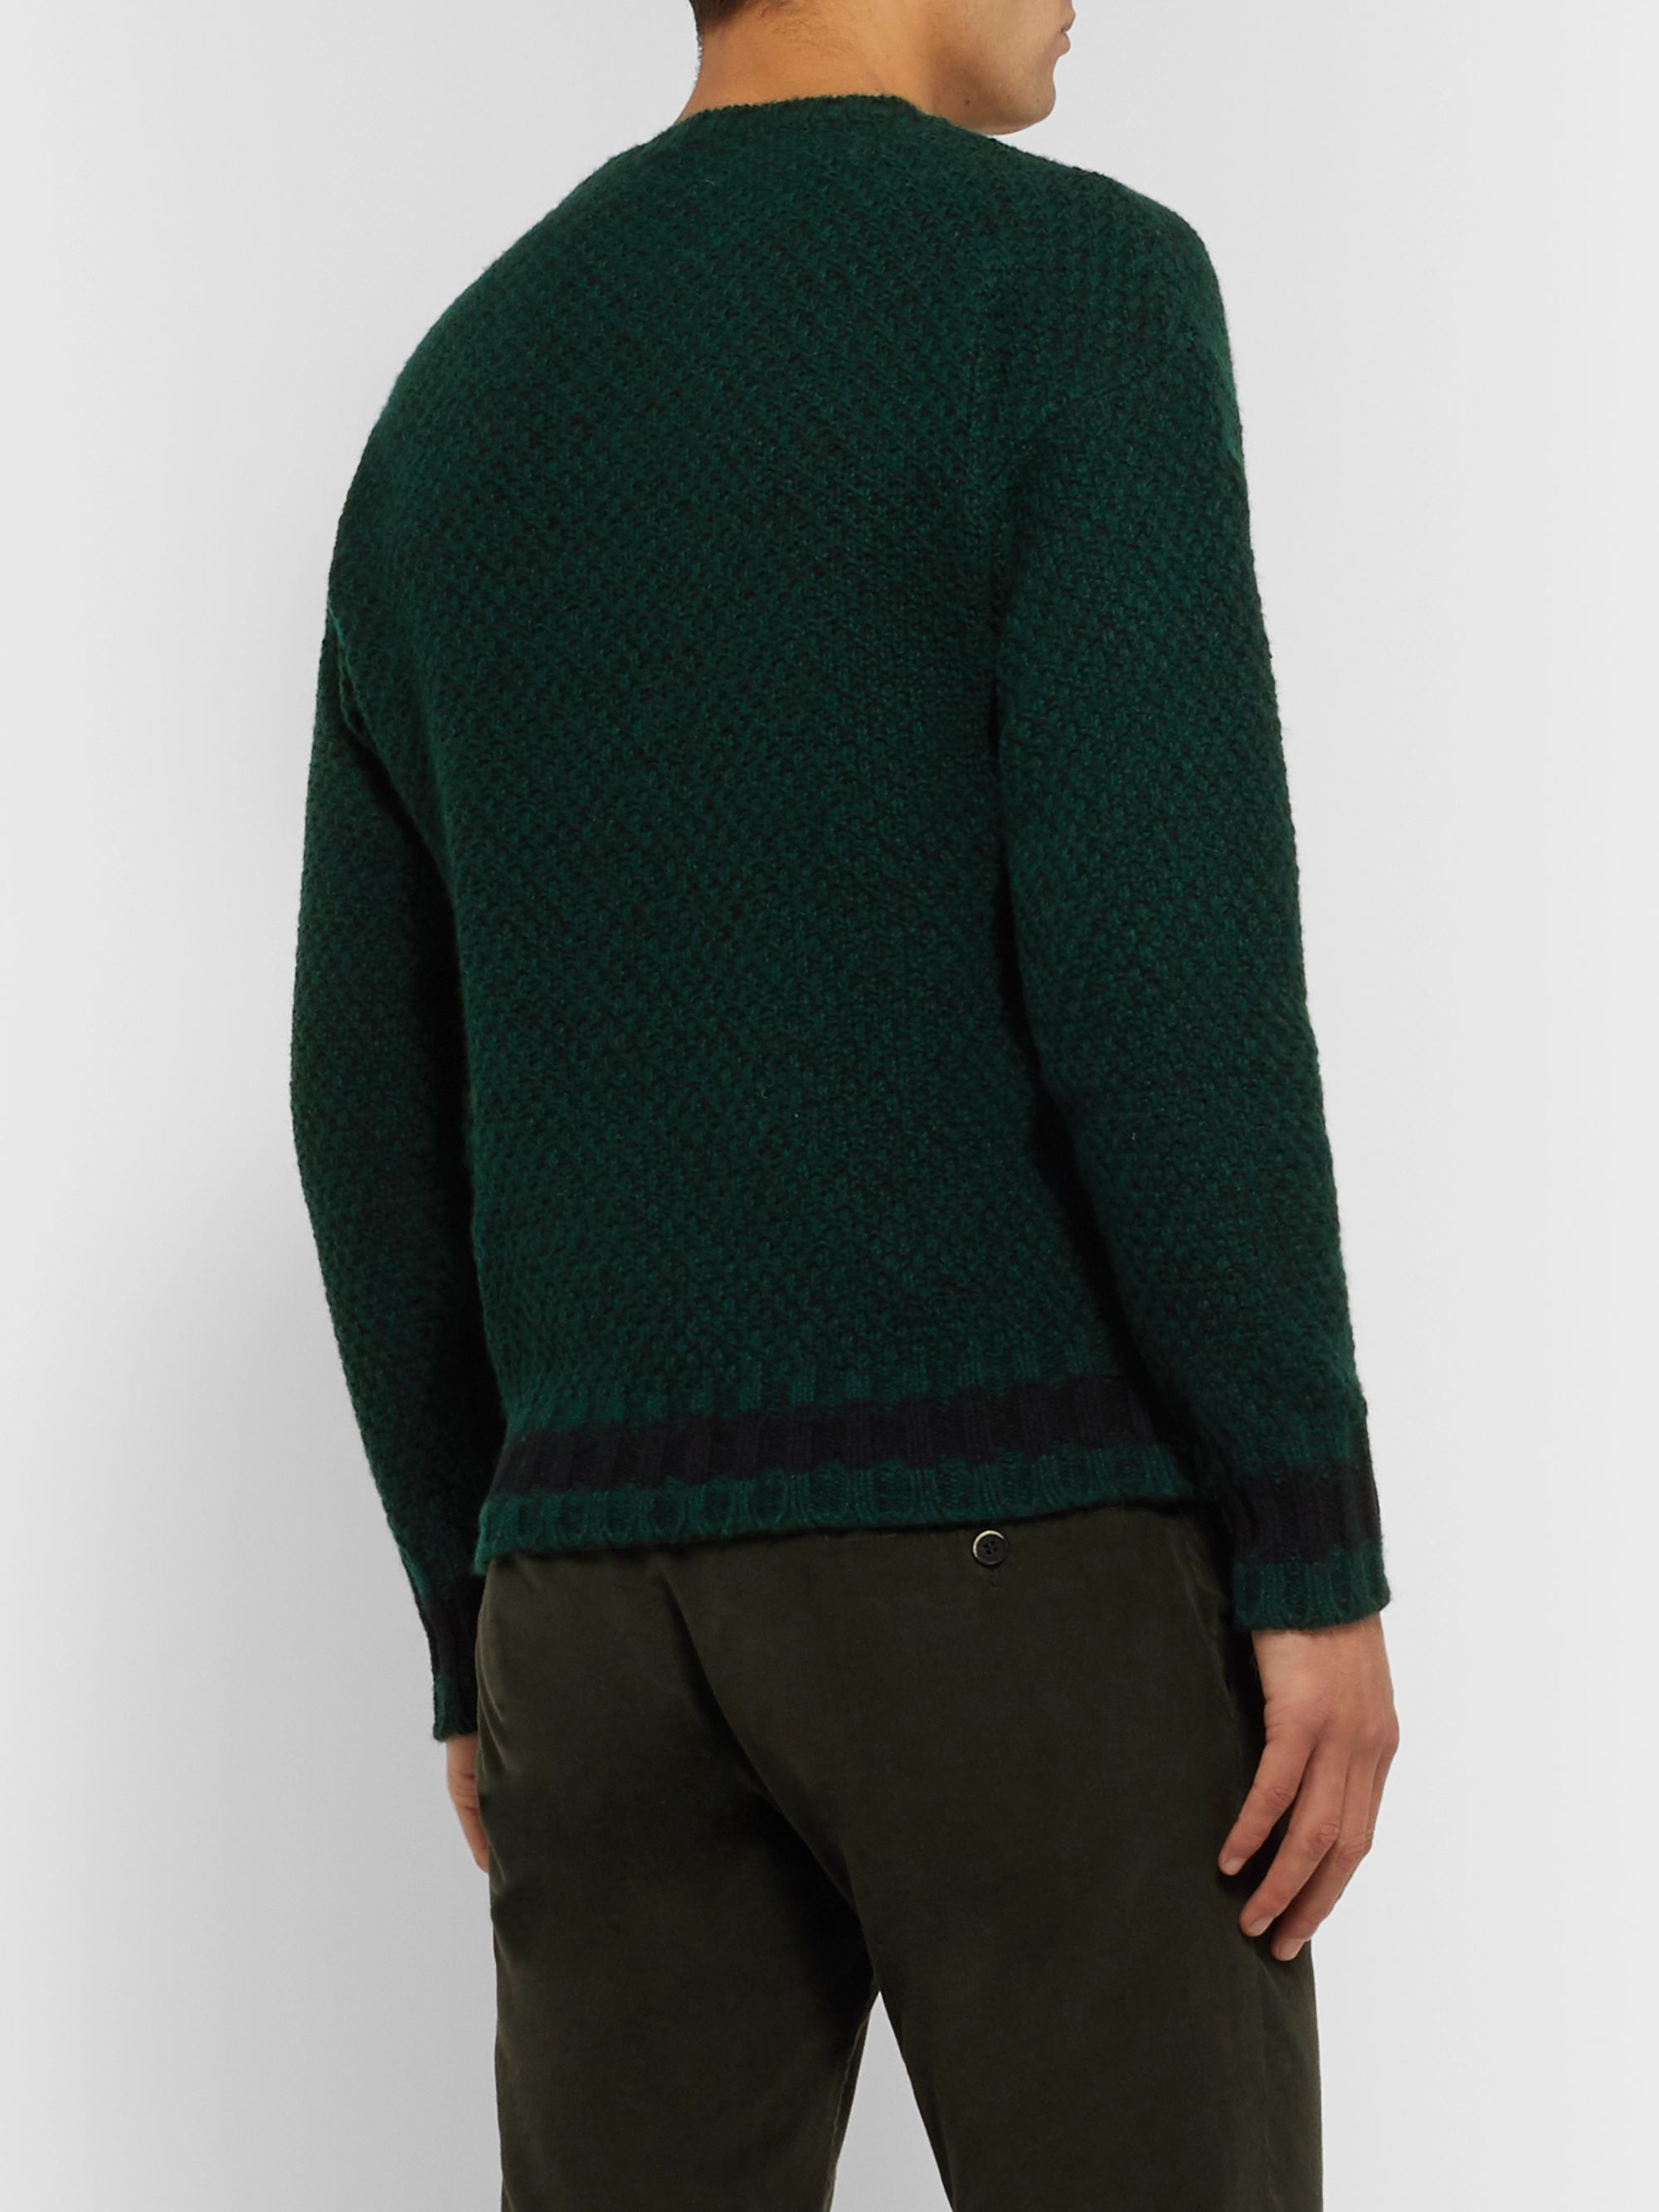 MP Massimo Piombo Slim-Fit Mélange Waffle-Knit Wool Sweater